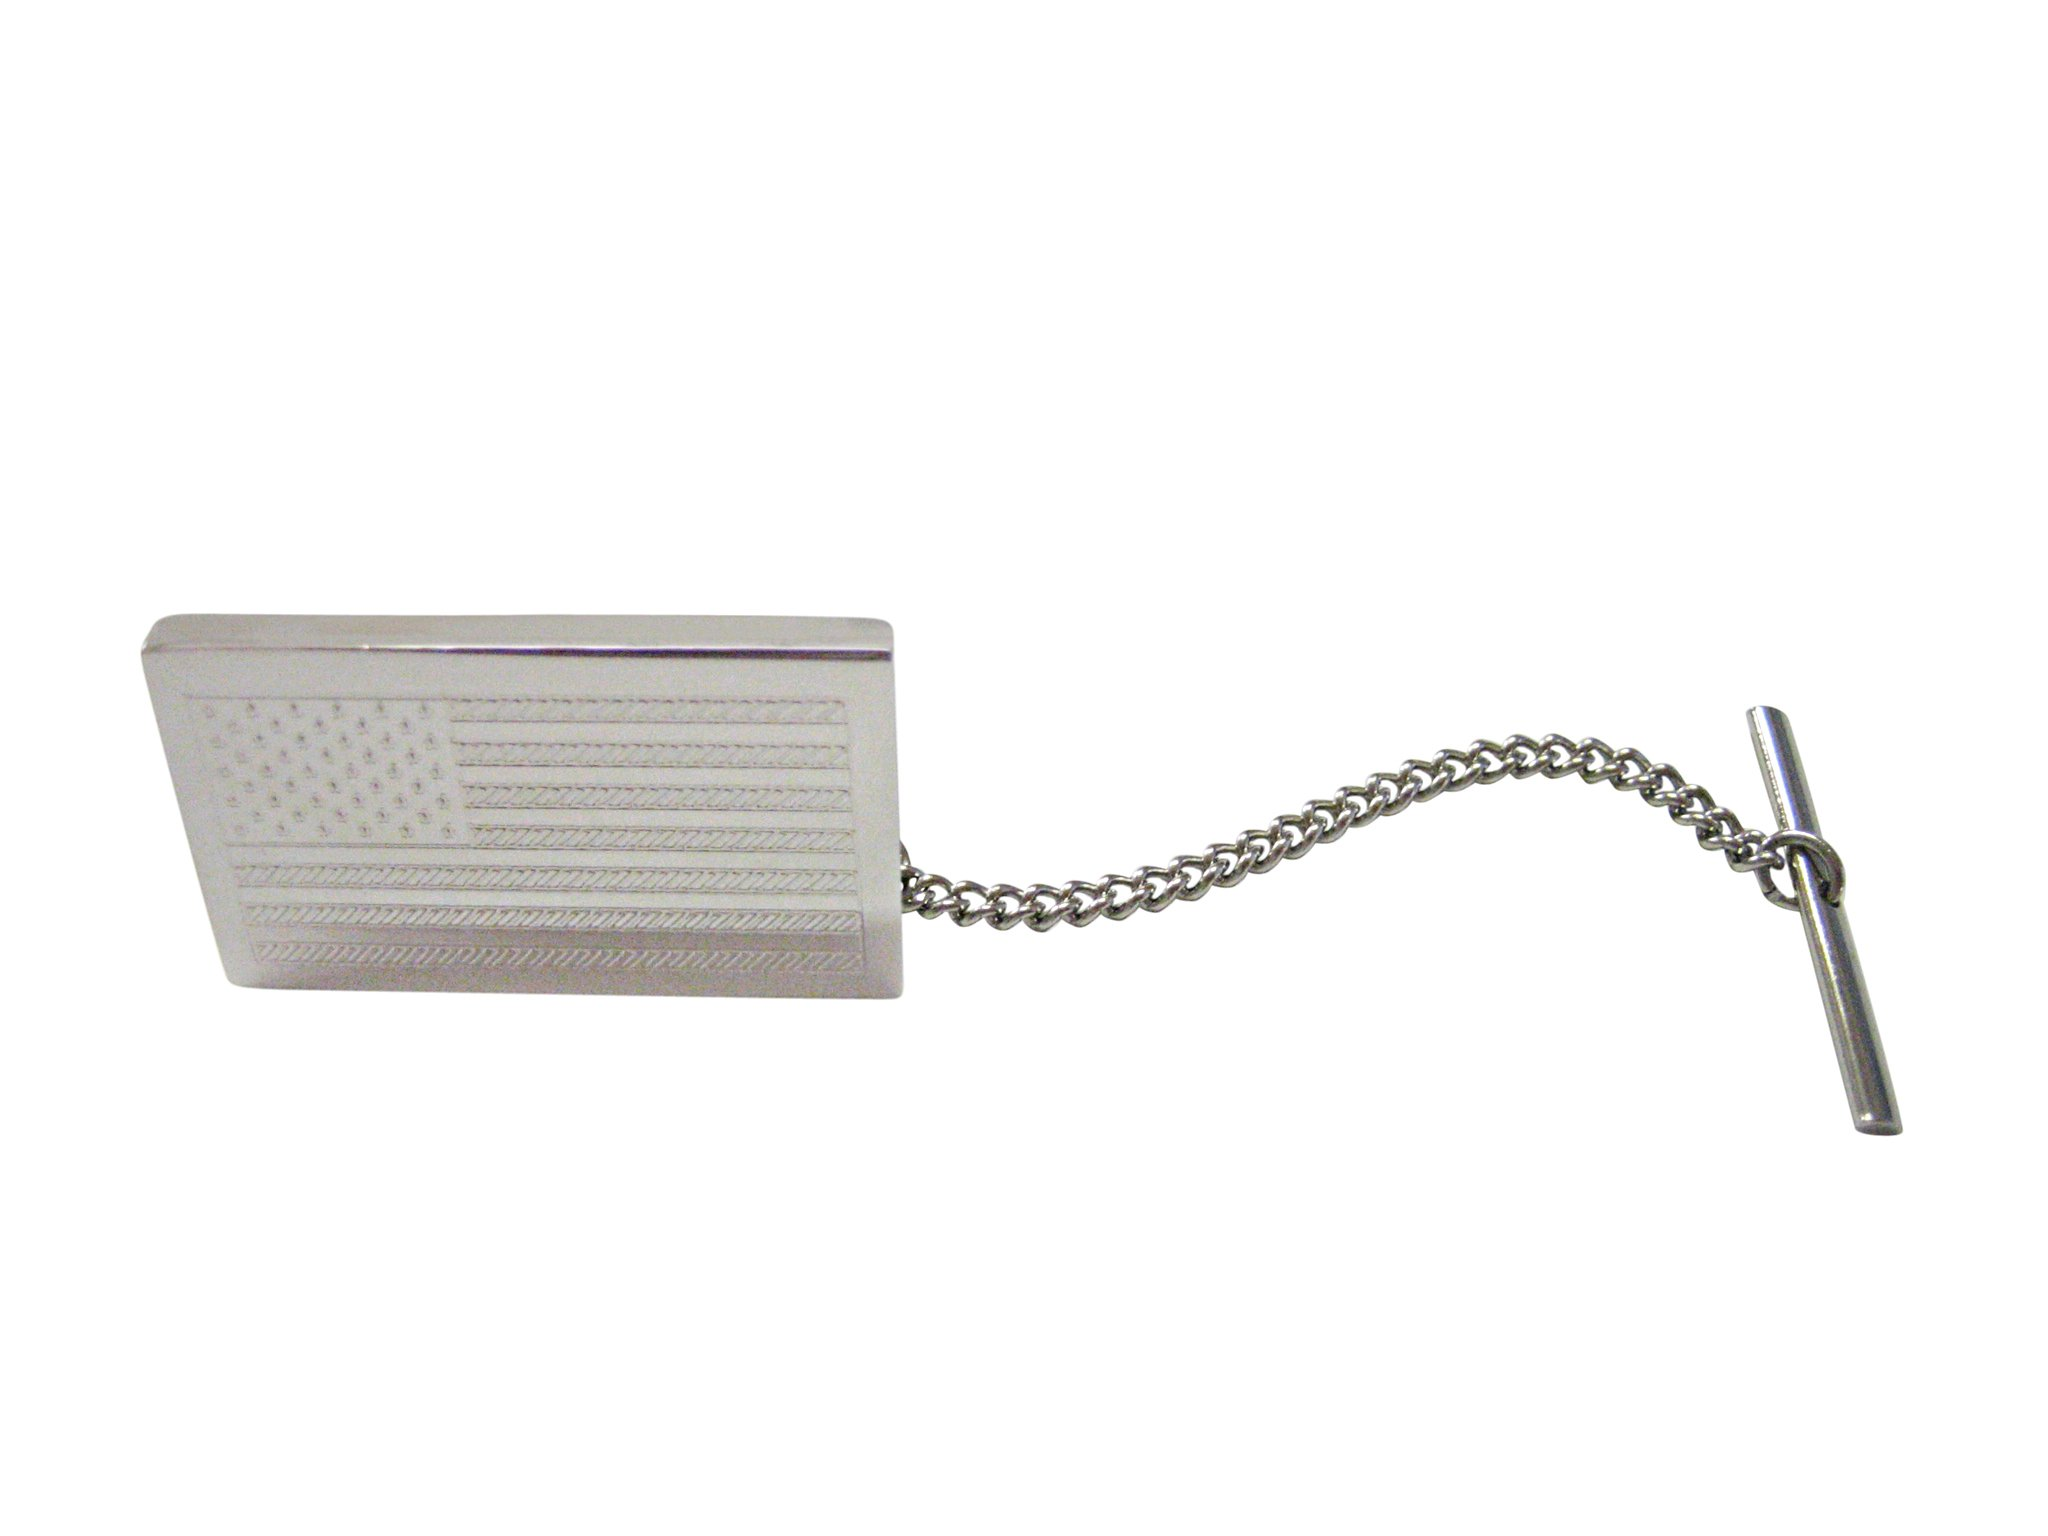 Silver Toned Etched USA American Flag Tie Tack